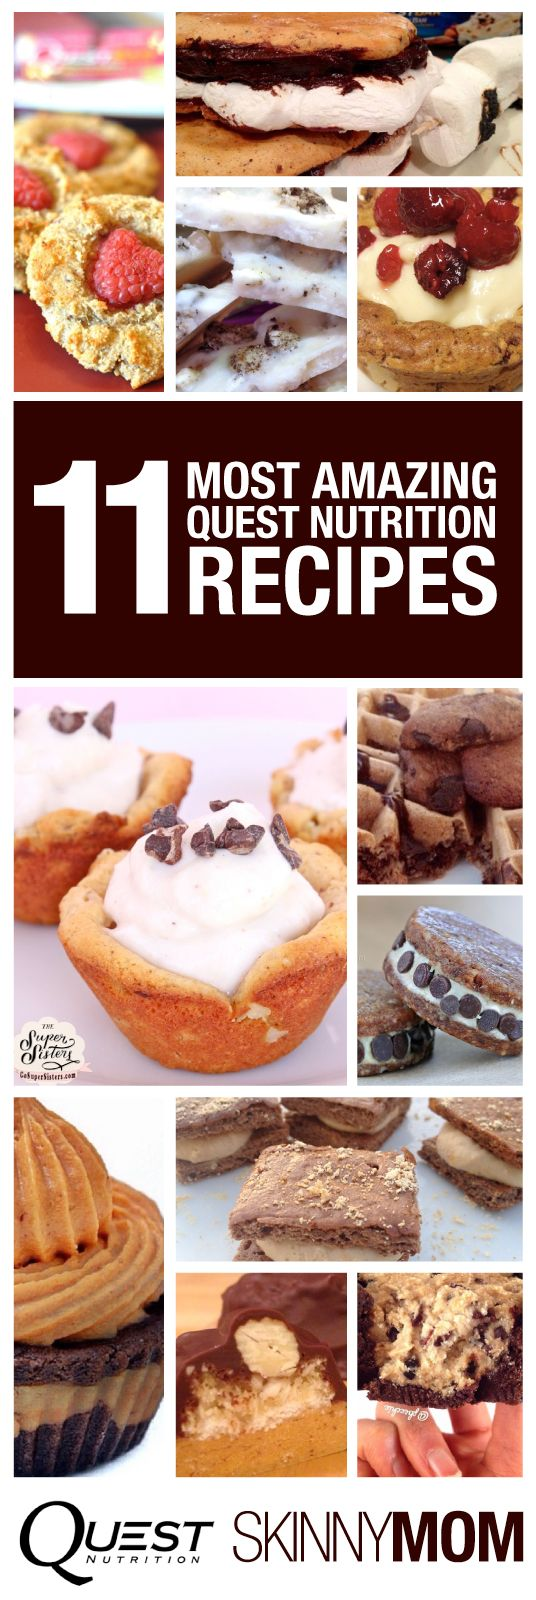 Check out these great recipes made from protein bars!